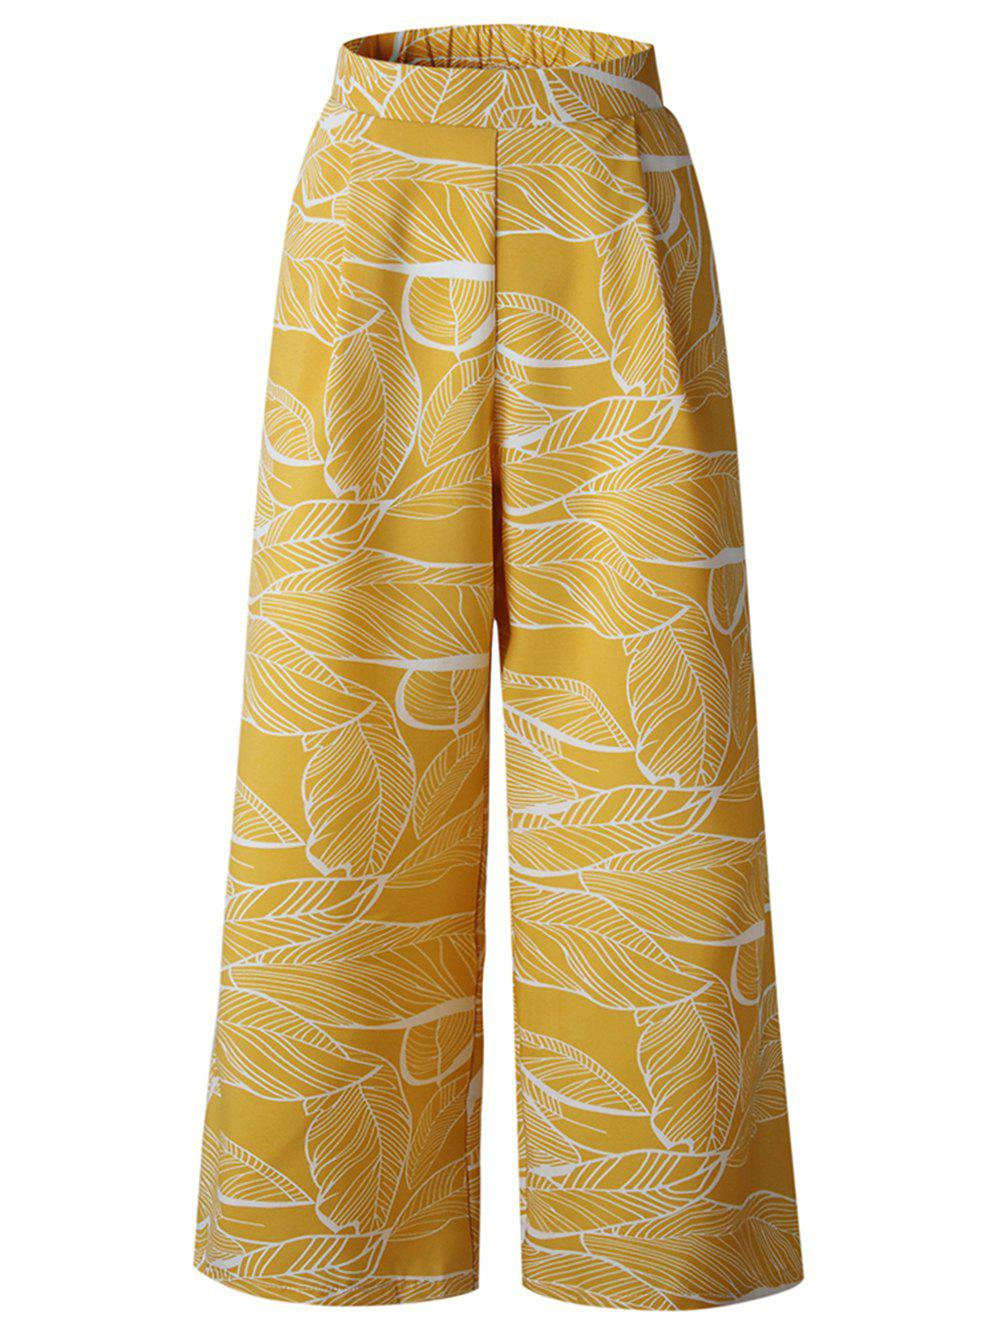 Outfit Womens Casual Floral Print High Waist Wide Leg Long Palazzo Pants with Pockets